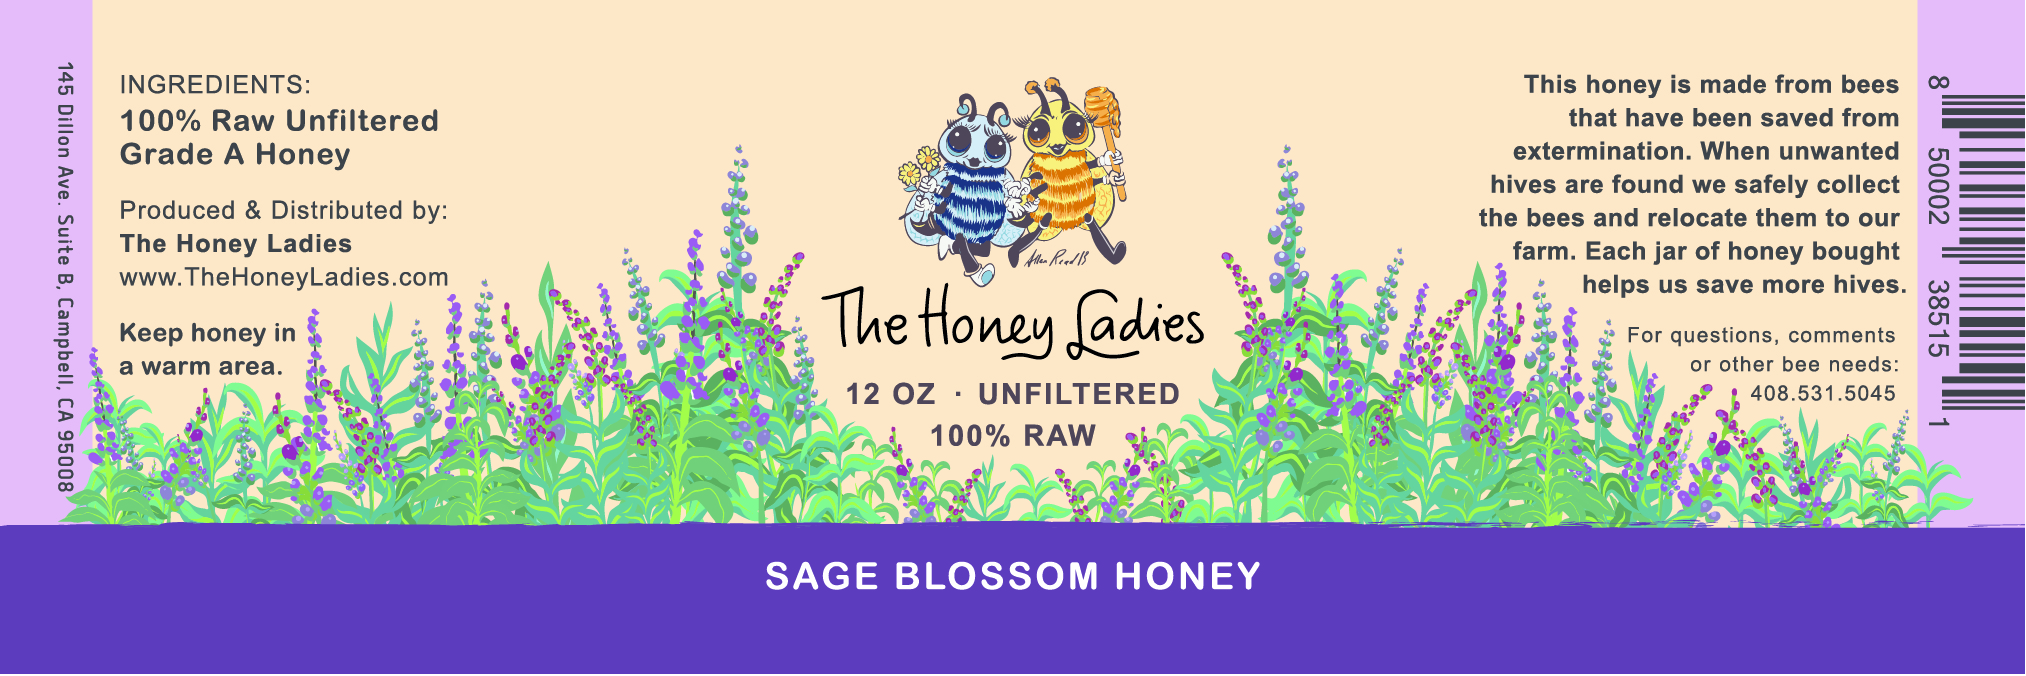 Sage Blossom Honey